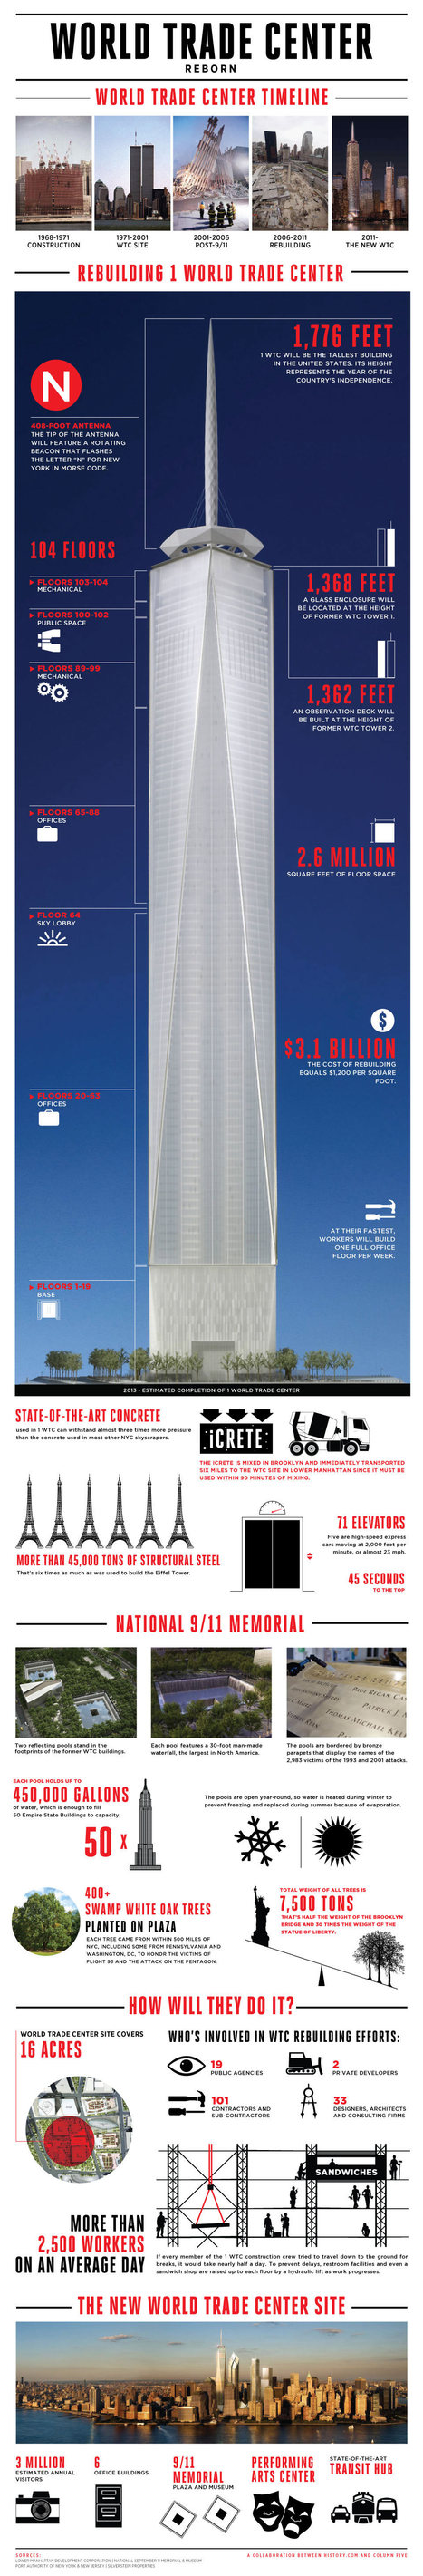 World Trade Center Reborn: Infographic | creating infographics for promotion | Scoop.it